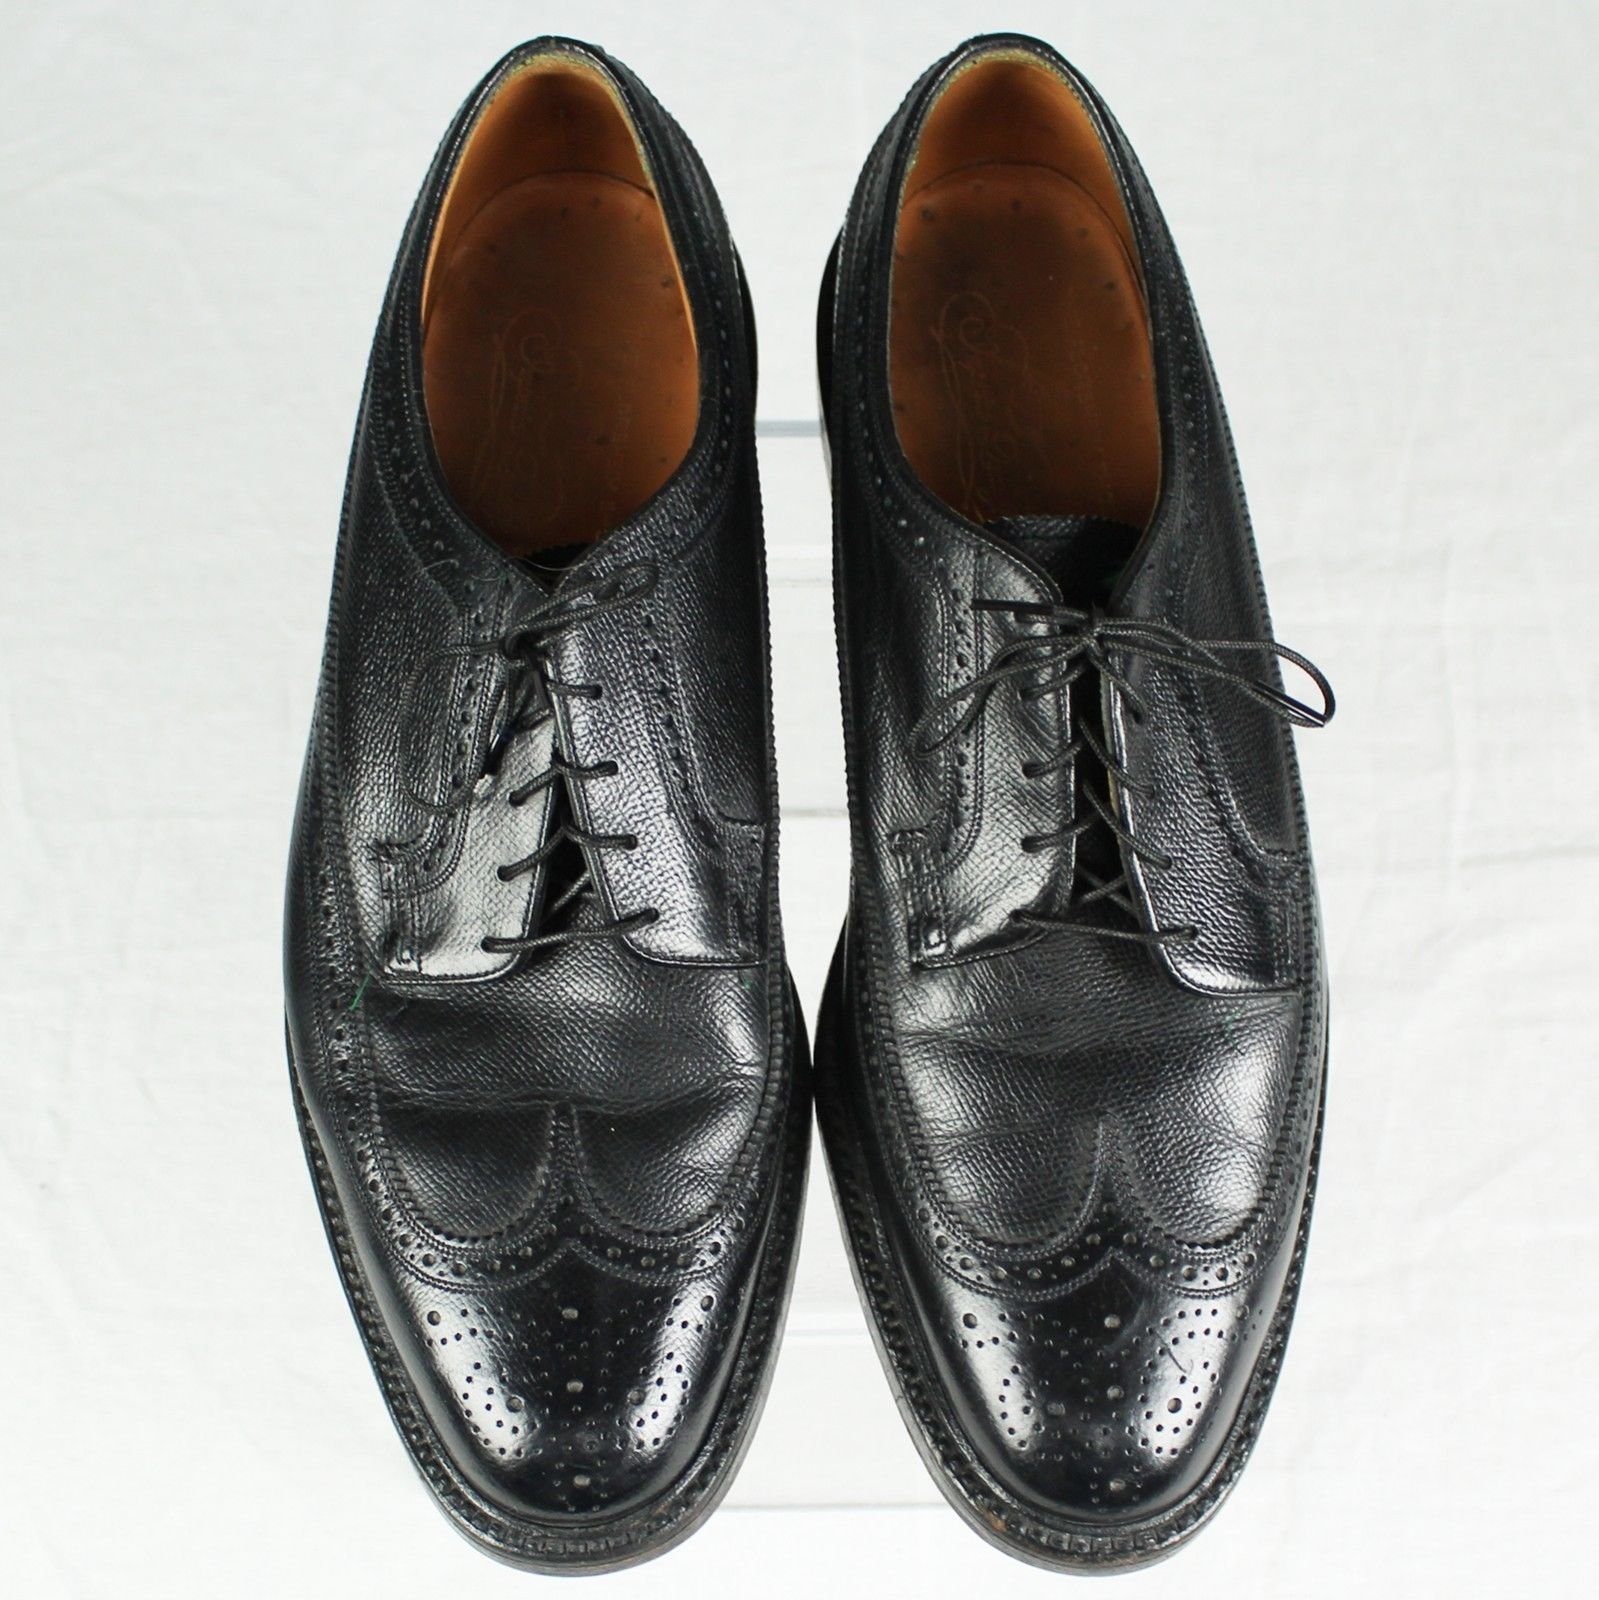 VINTAGE FLORSHEIM IMPERIAL 92604 5~NAIL/V~CLEAT LONGWING OXFORDS SIZE 9 D!